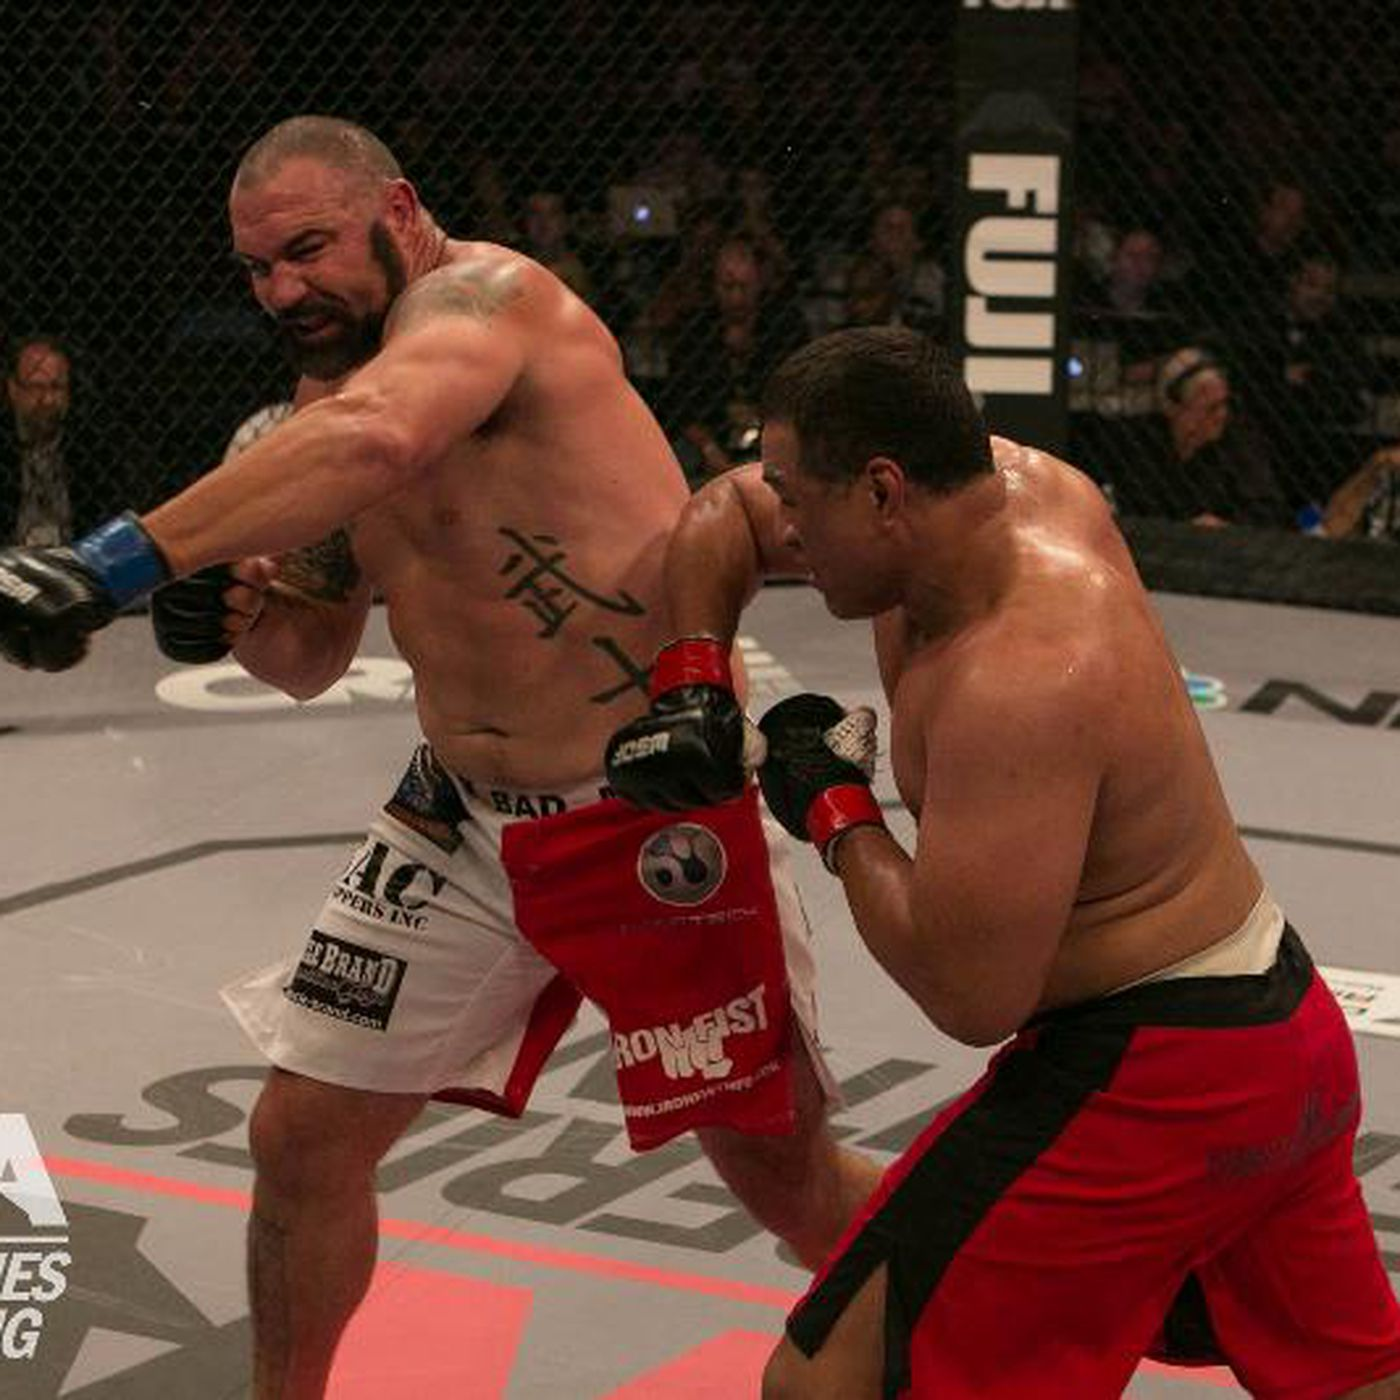 WSOF 4 results recap: Dave Huckaba vs Ray Sefo fight review and